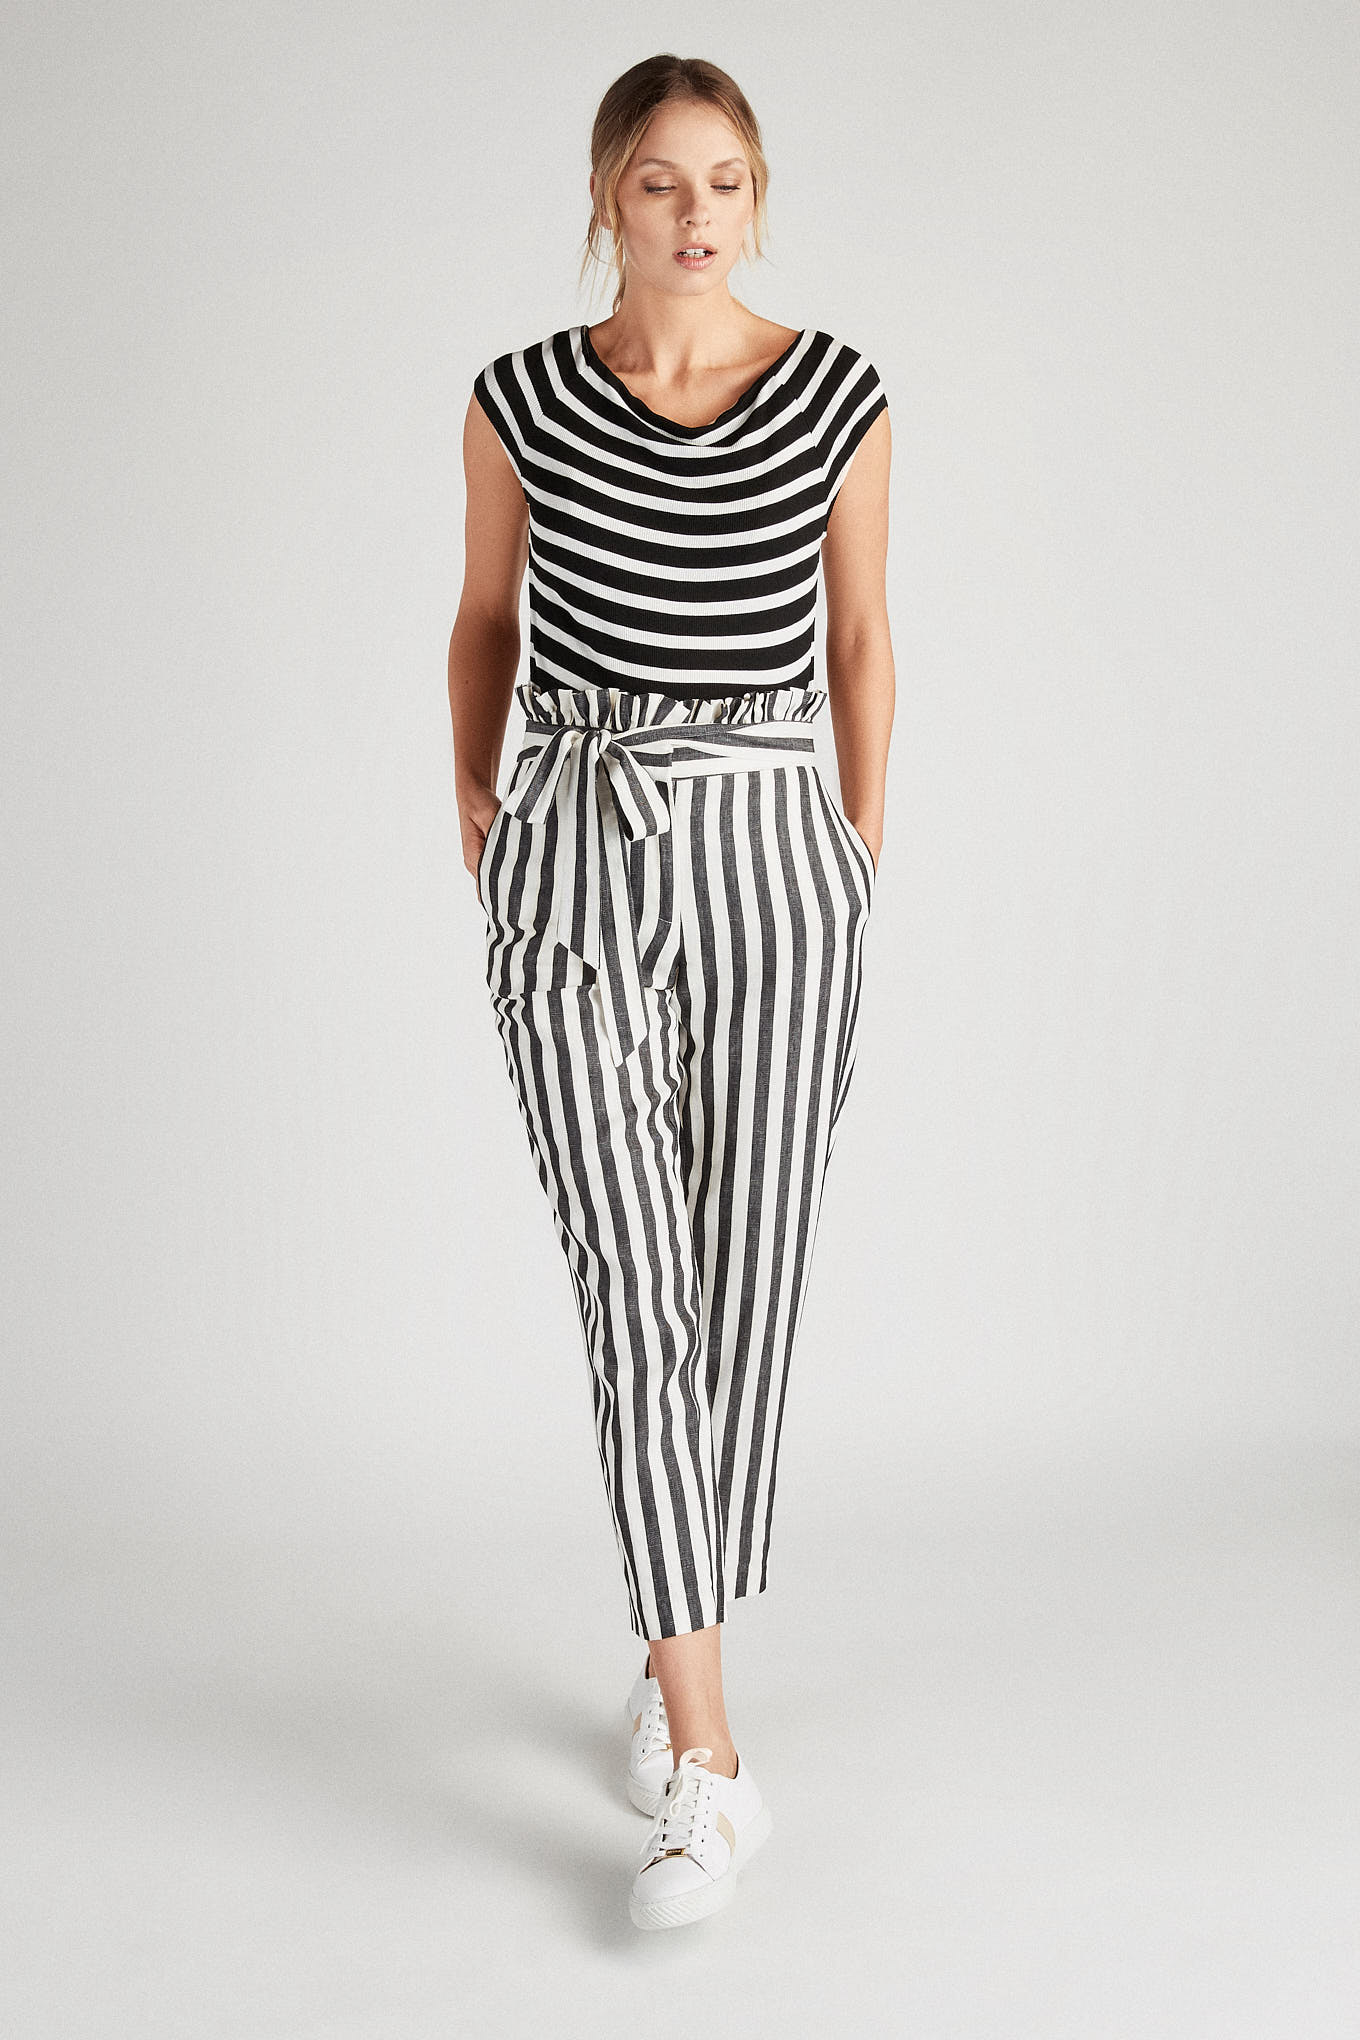 T-Shirt Stripes Casual Woman